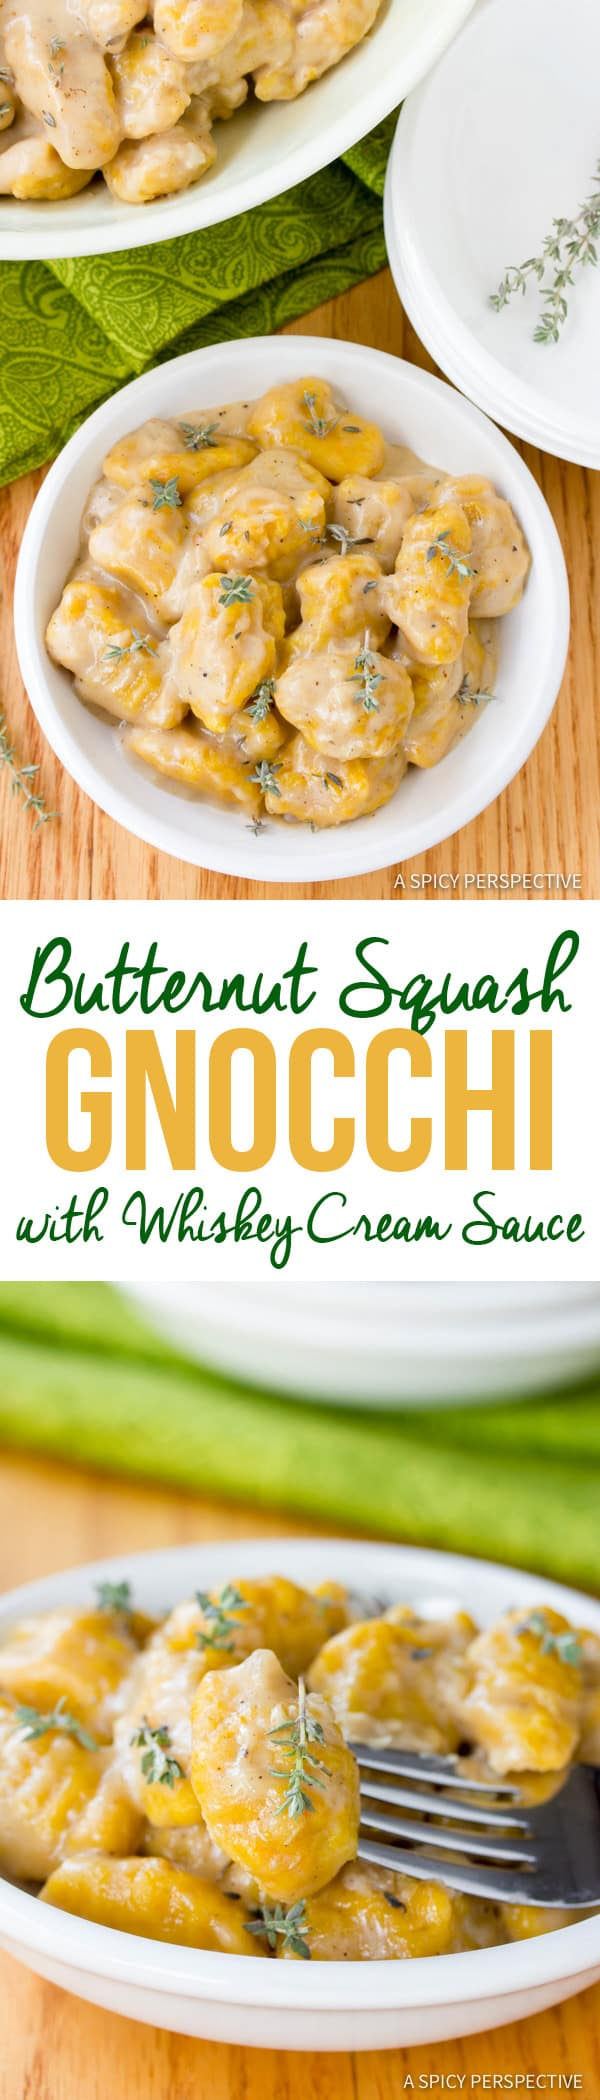 Amazing Butternut Squash Gnocchi with Whiskey Cream Sauce | ASpicyPerspective.com